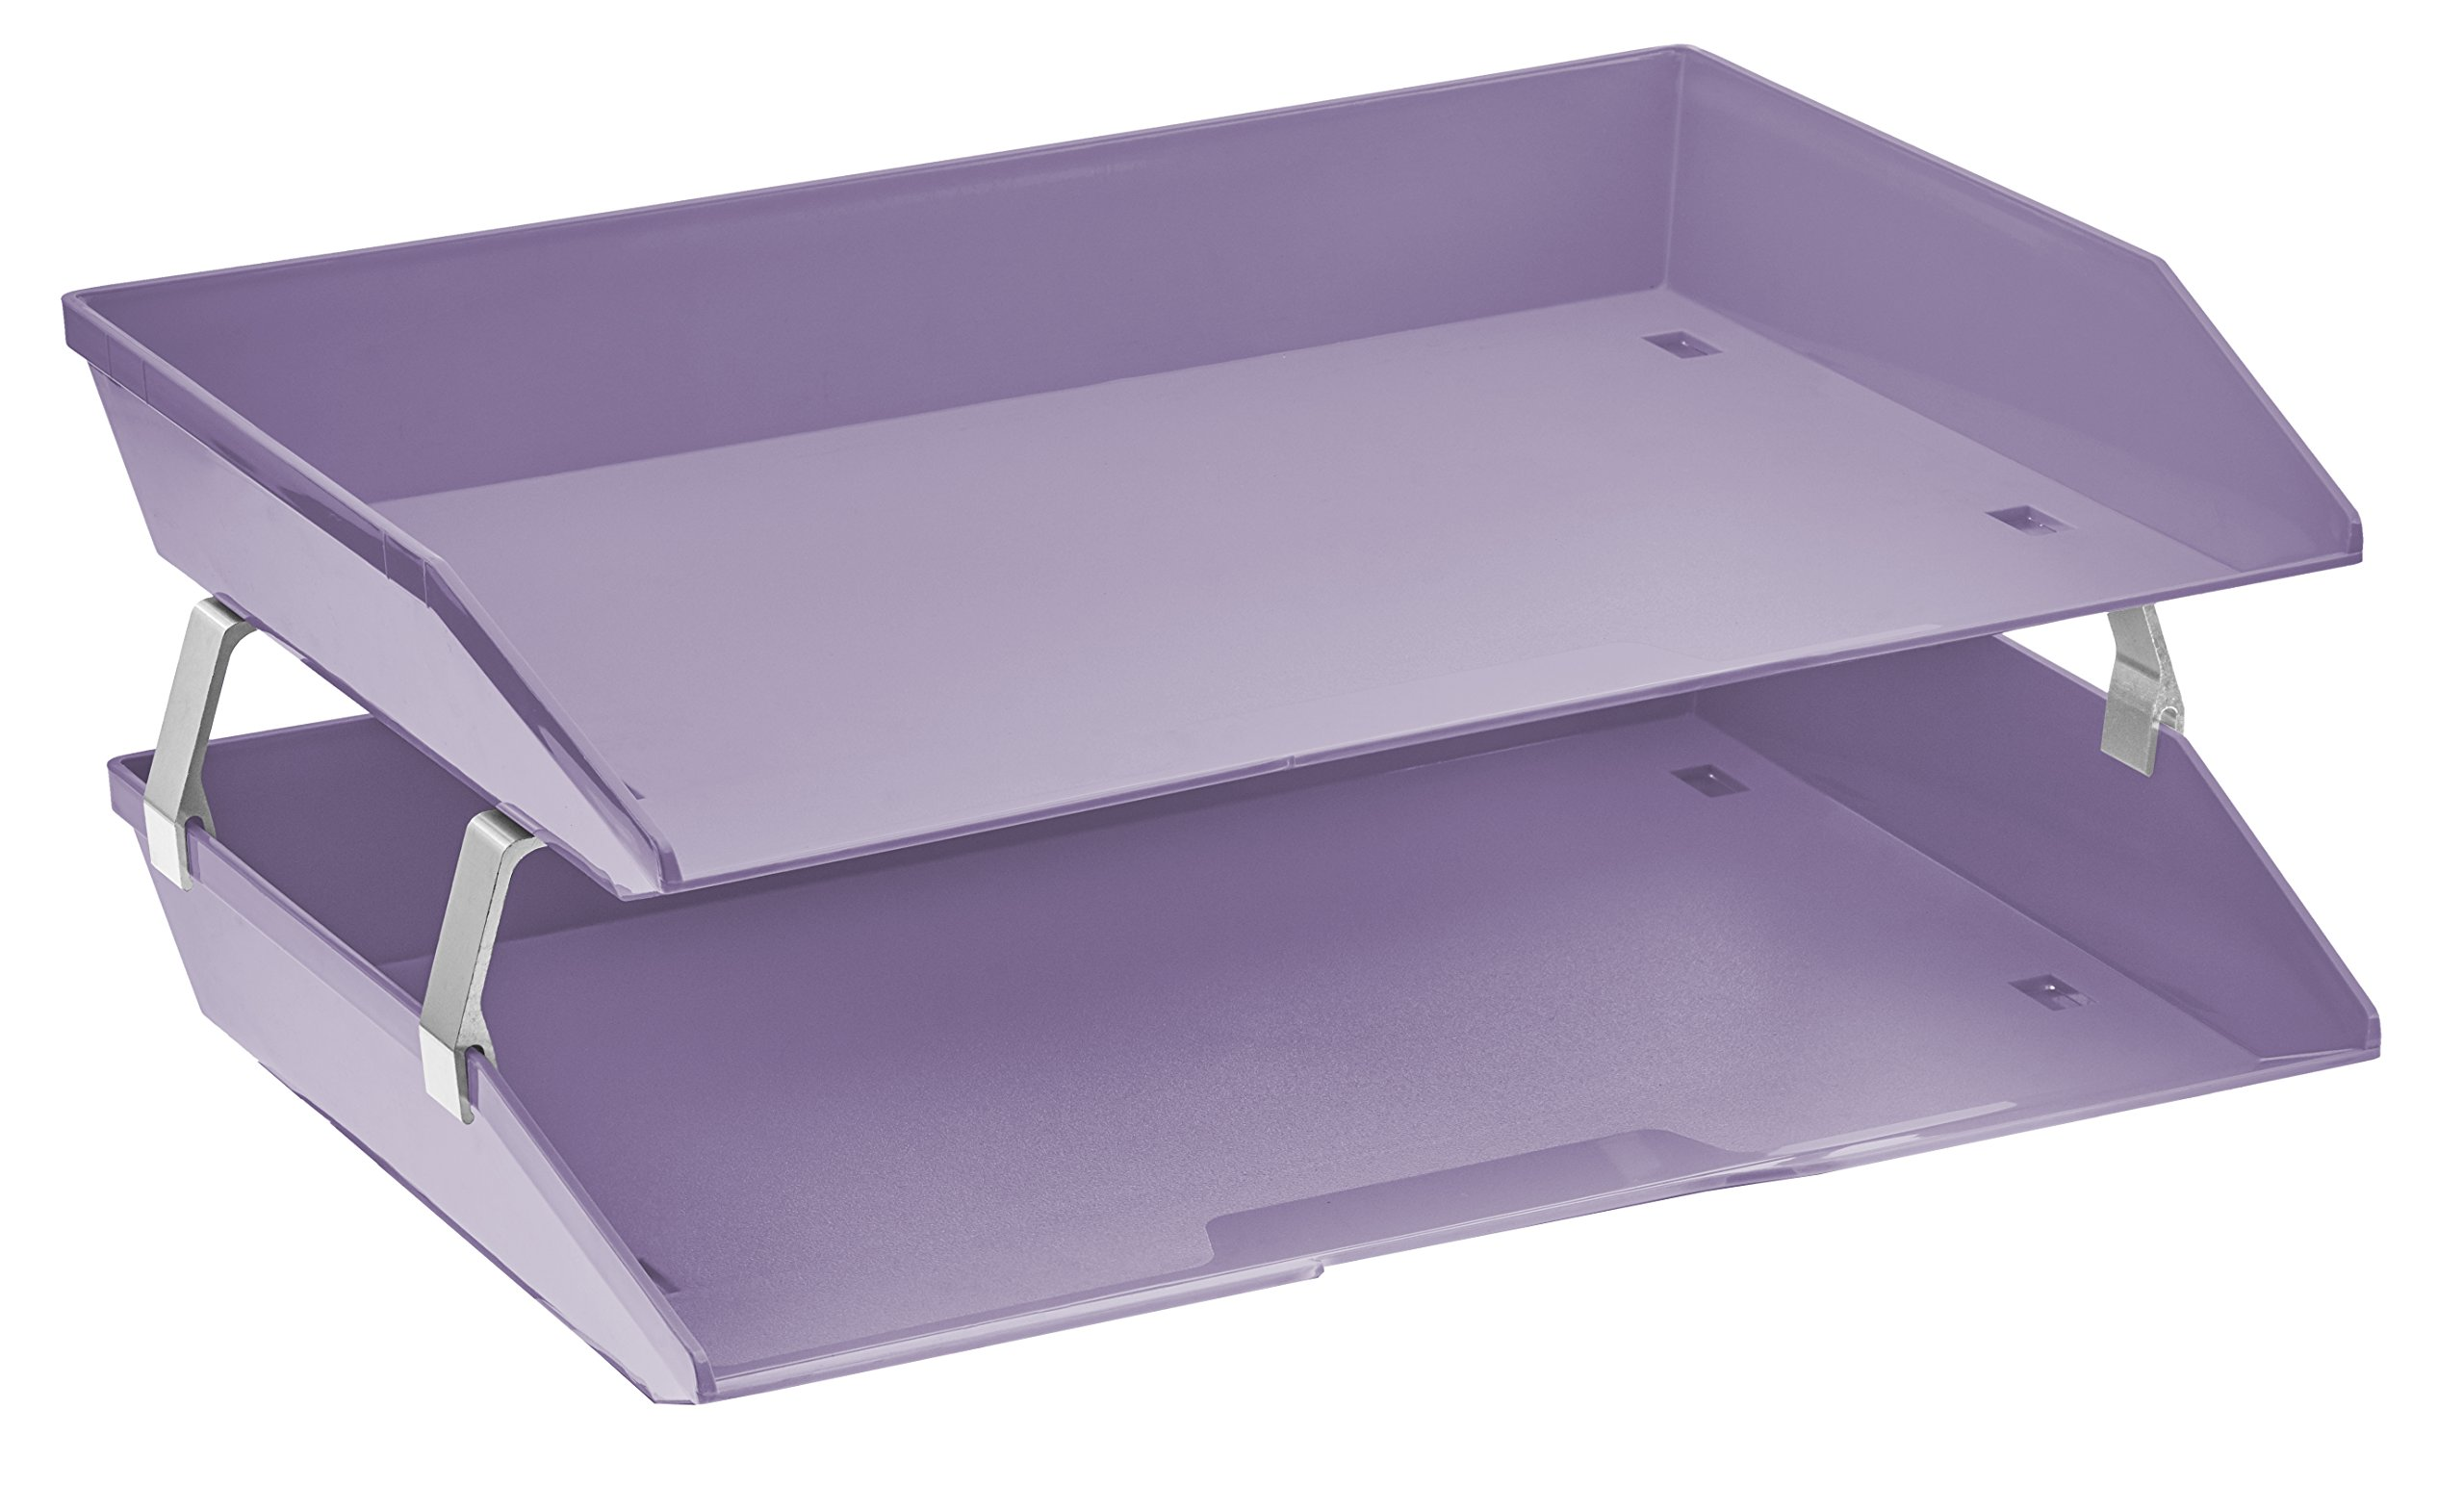 Acrimet Facility 2 Tiers Double Letter Tray (Solid Purple Color)